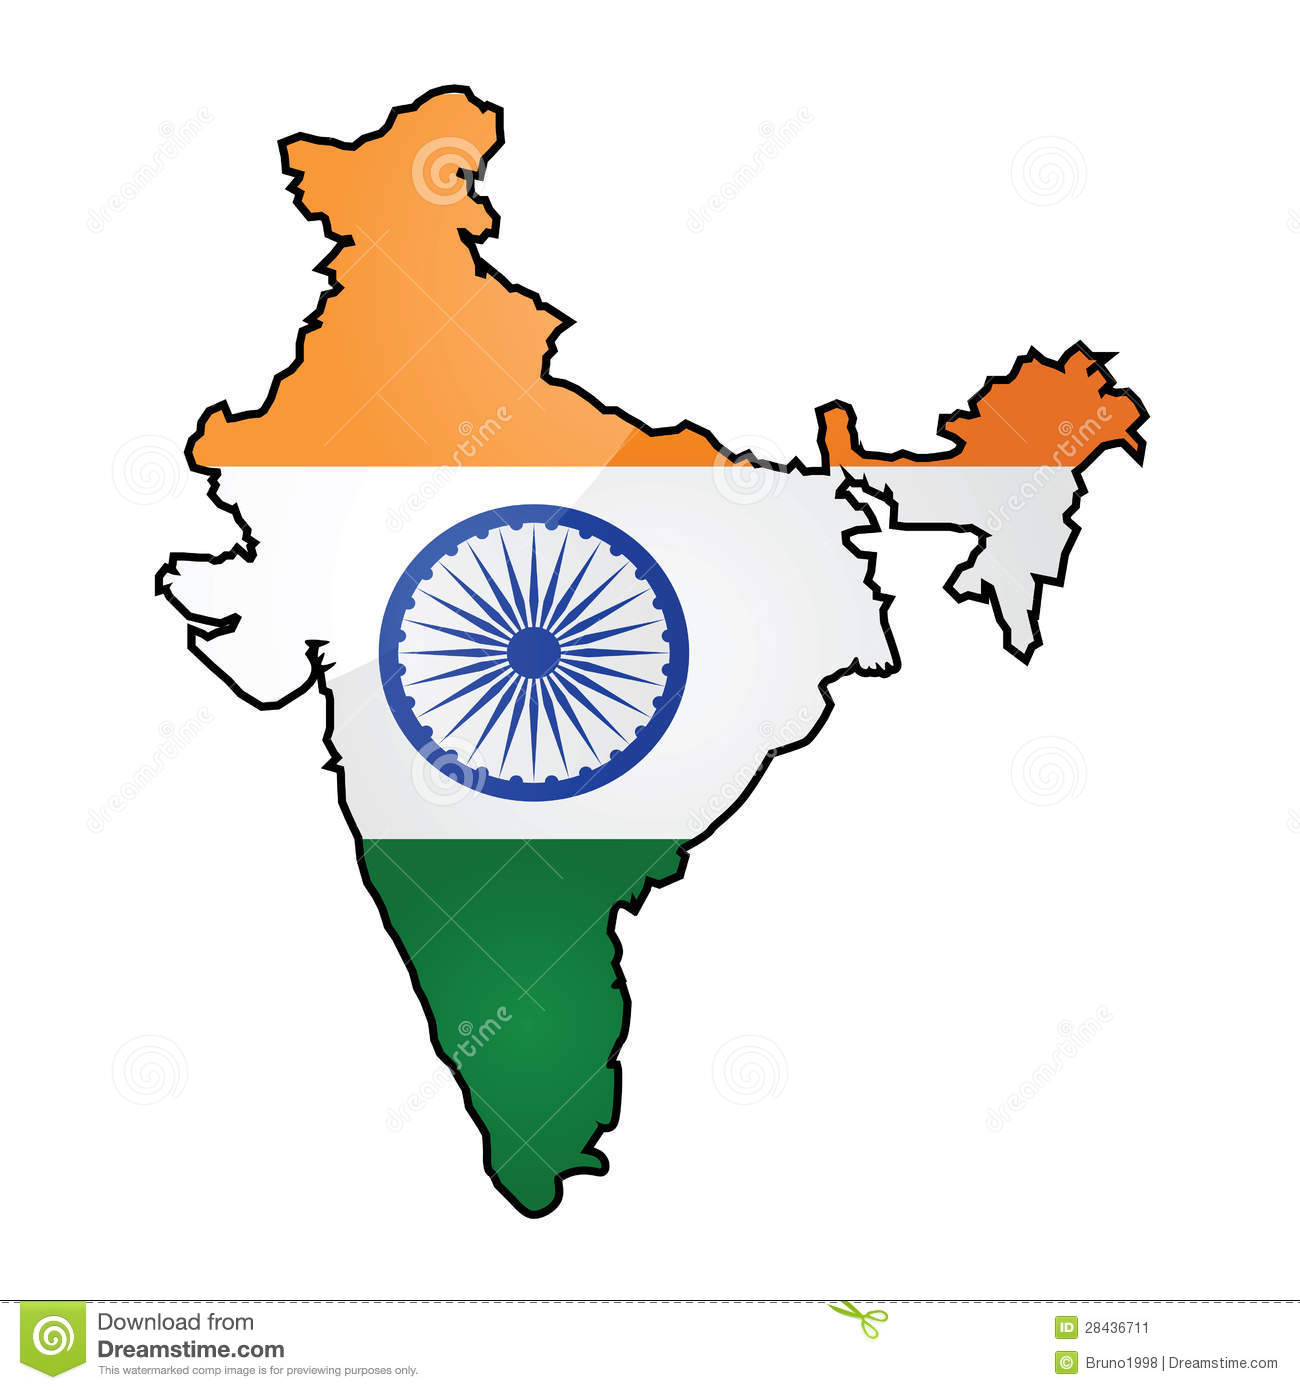 India Map Flag.Map And Flag Of India Stock Vector Illustration Of Drawing 28436711